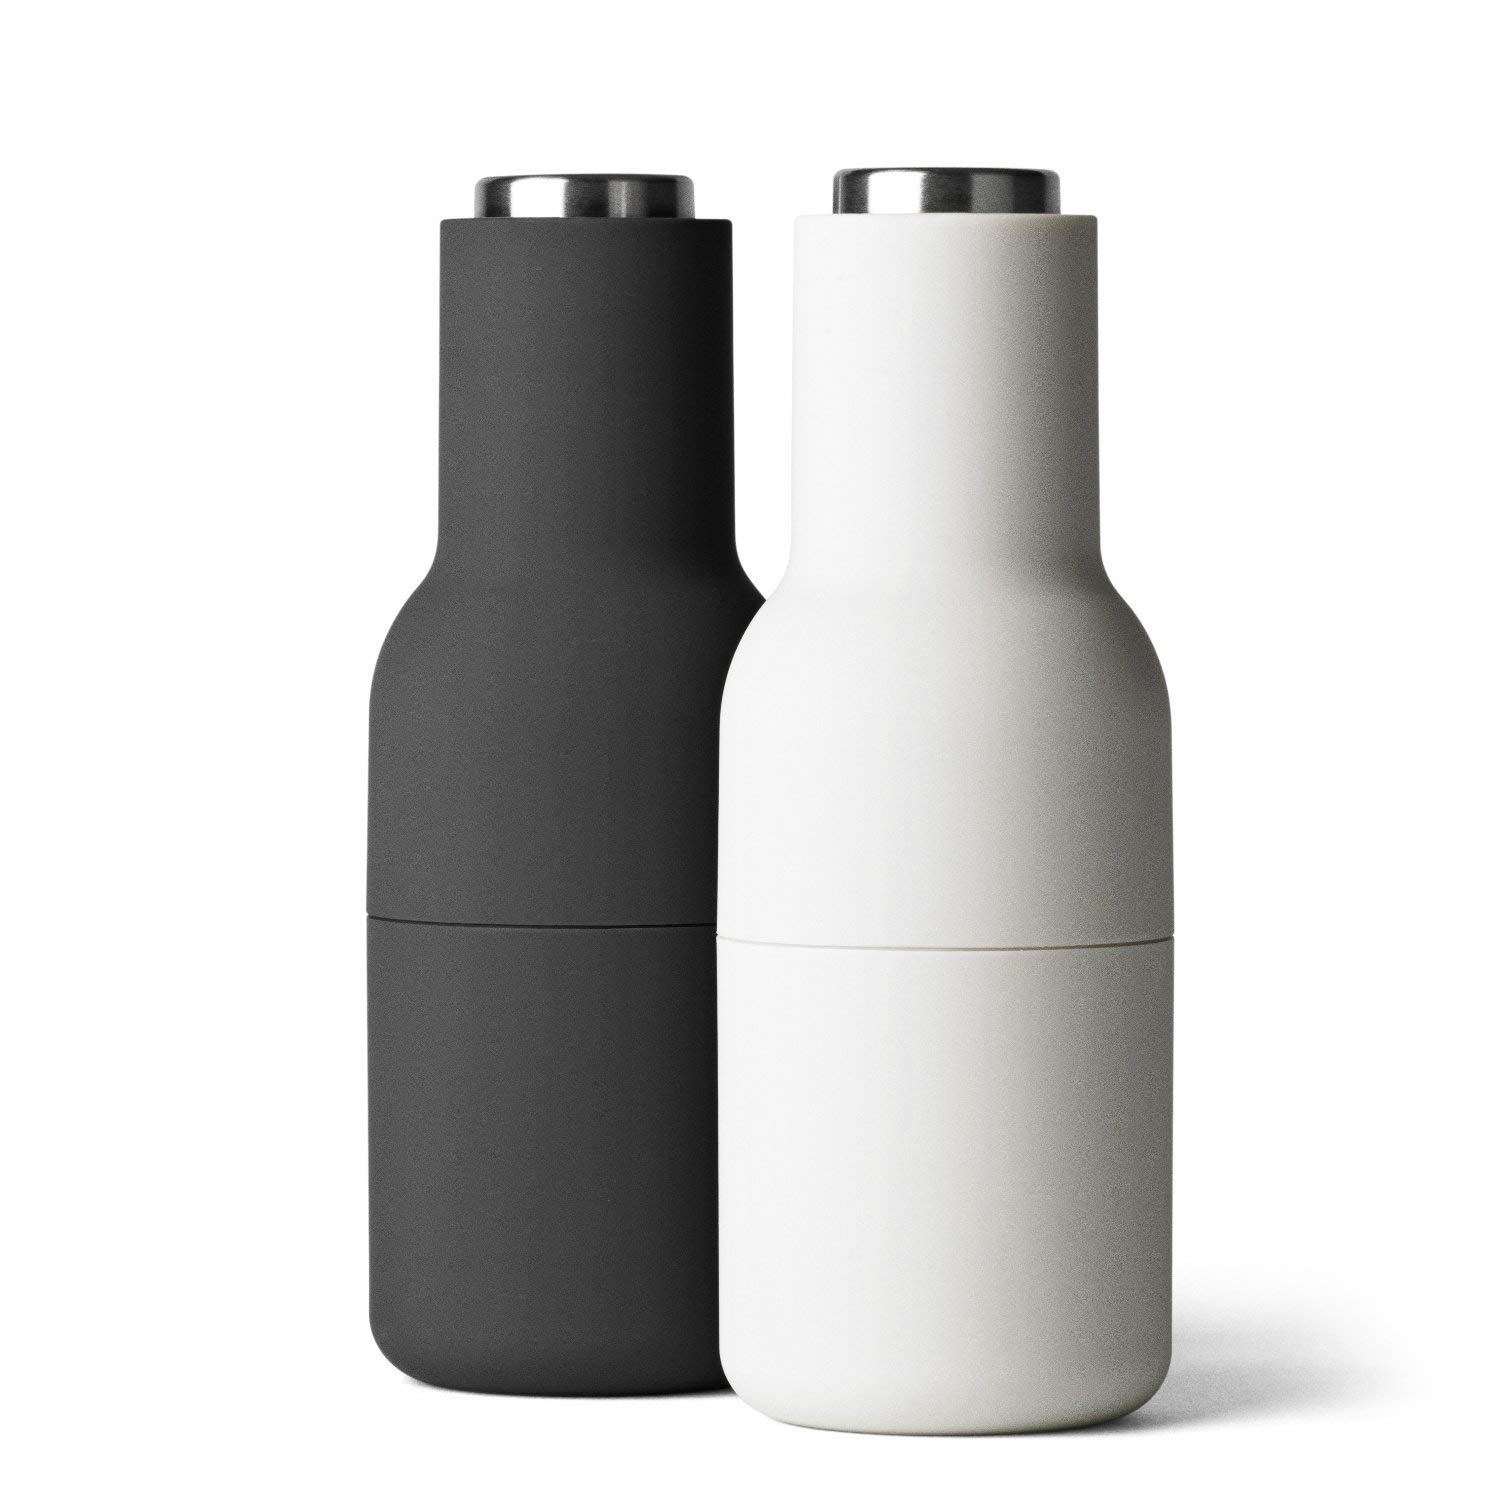 My favorite weekly finds, including this MENU Bottle Grinder with Steel Lid, Ash/Carbon, Set of 2 | Click through for the details. | glitterinc.com | @glitterinc